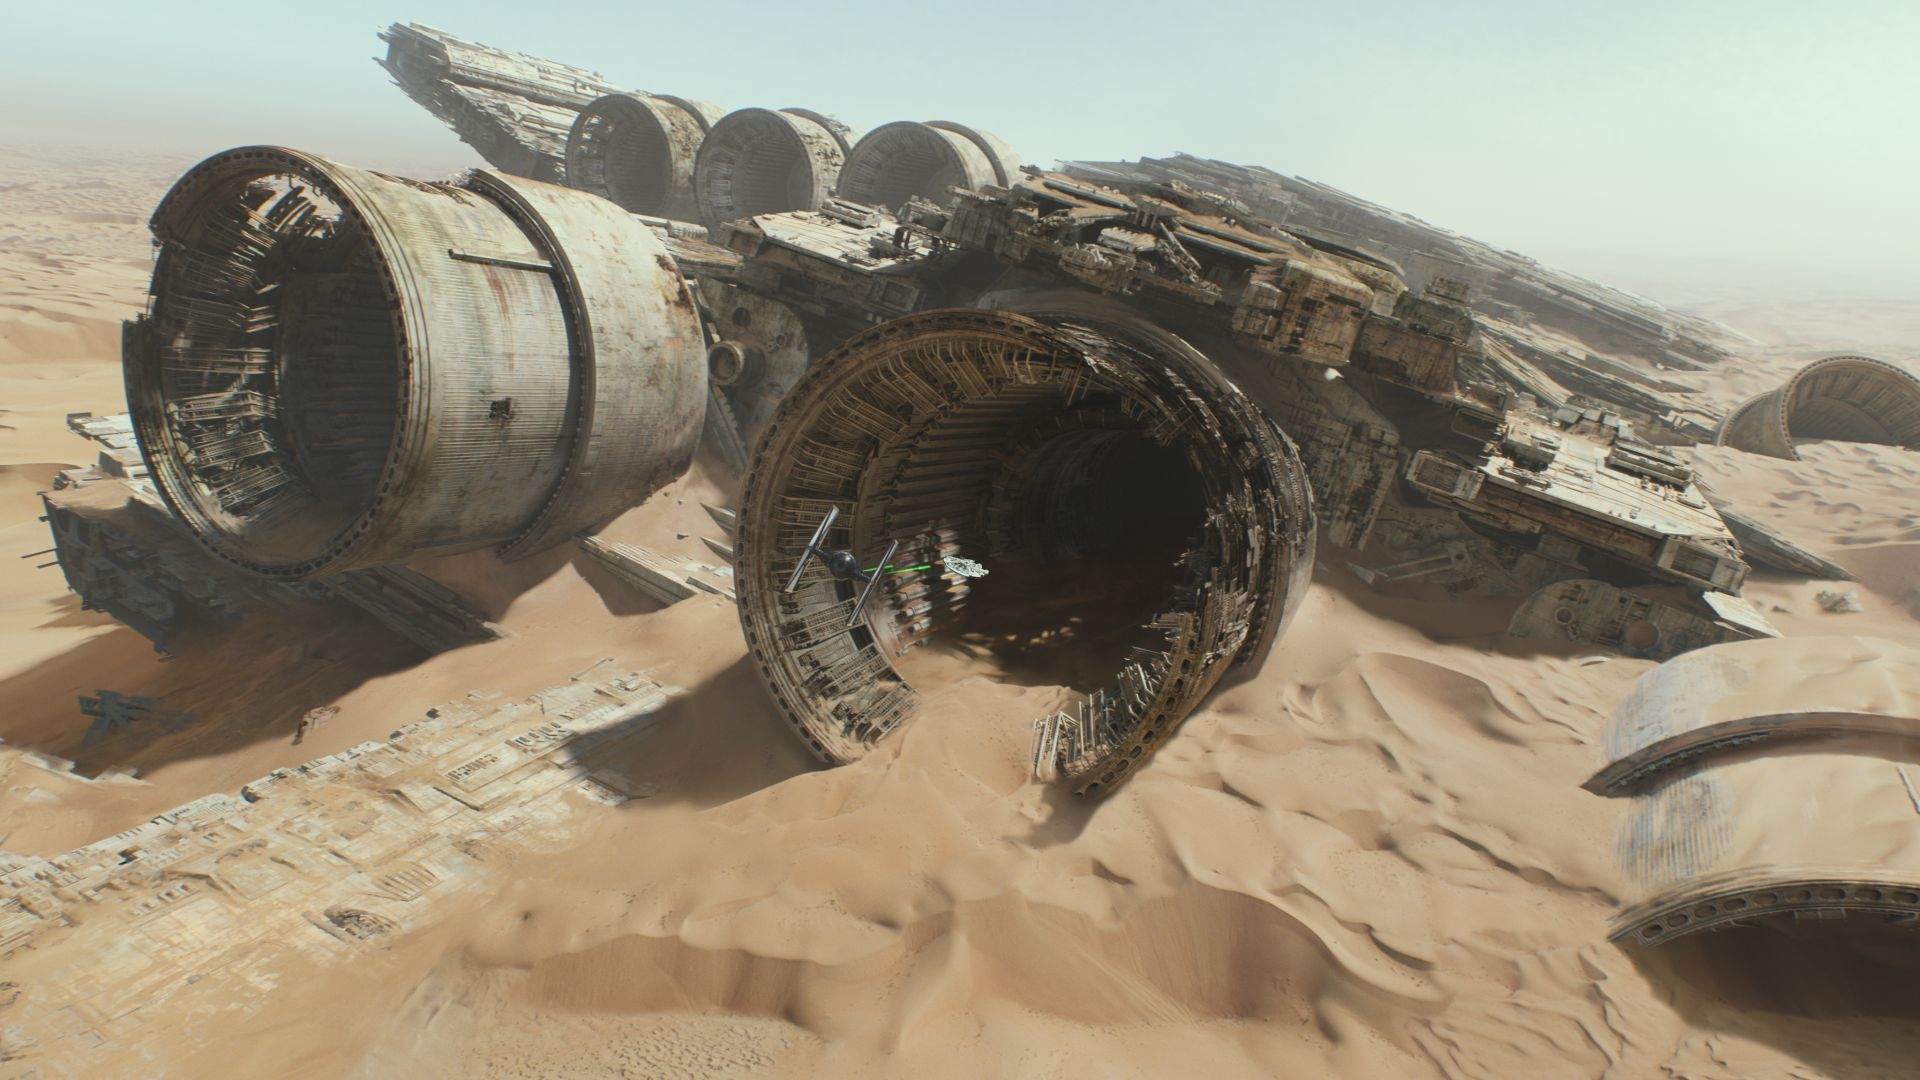 Star Wars: Episode VII - The Force Awakens, spaceship, desert (horizontal)